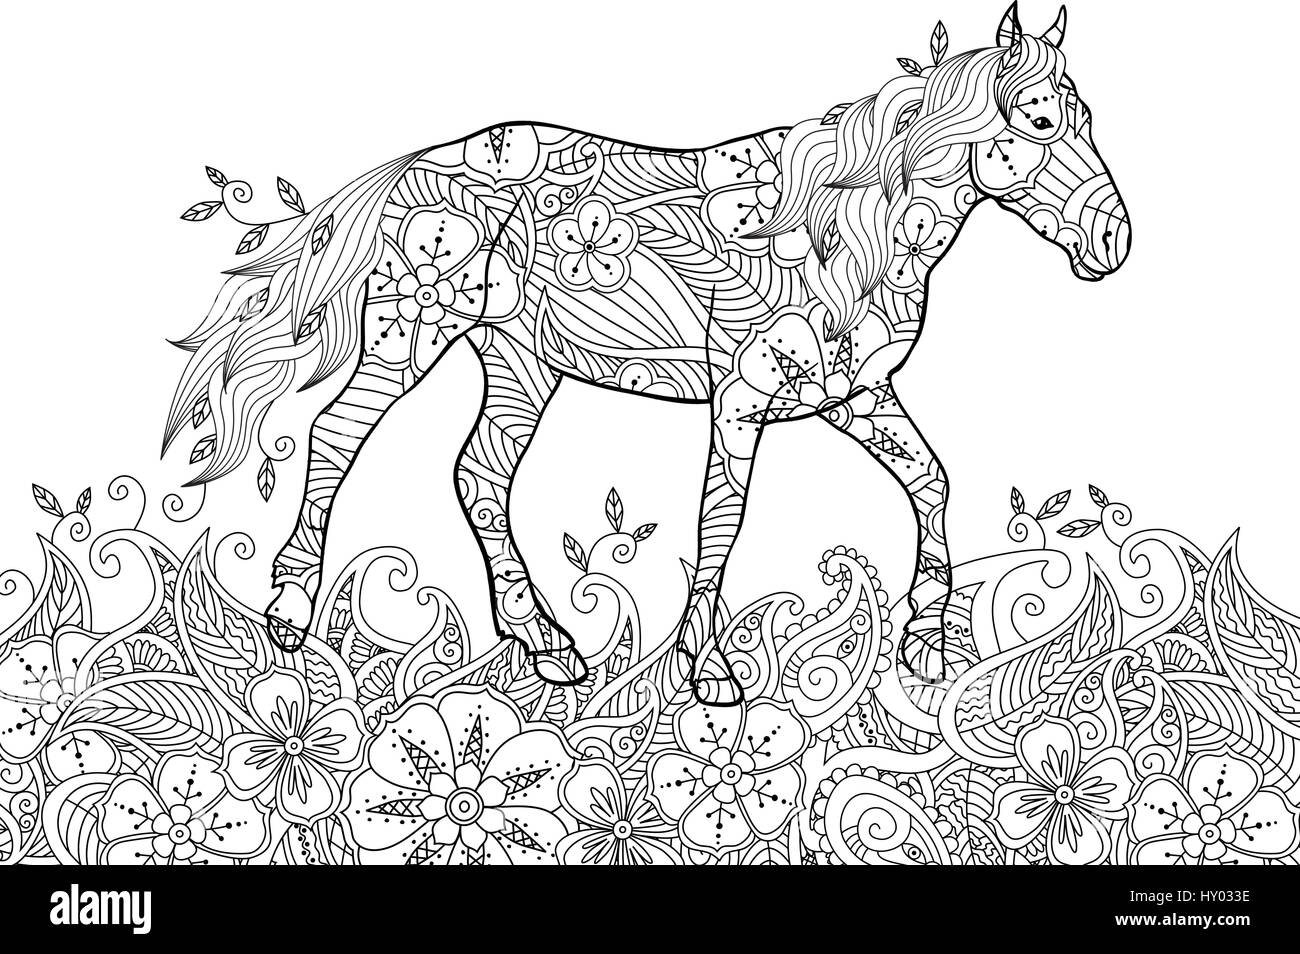 Coloring page in zentangle inspired doodle style. Running horse on ...